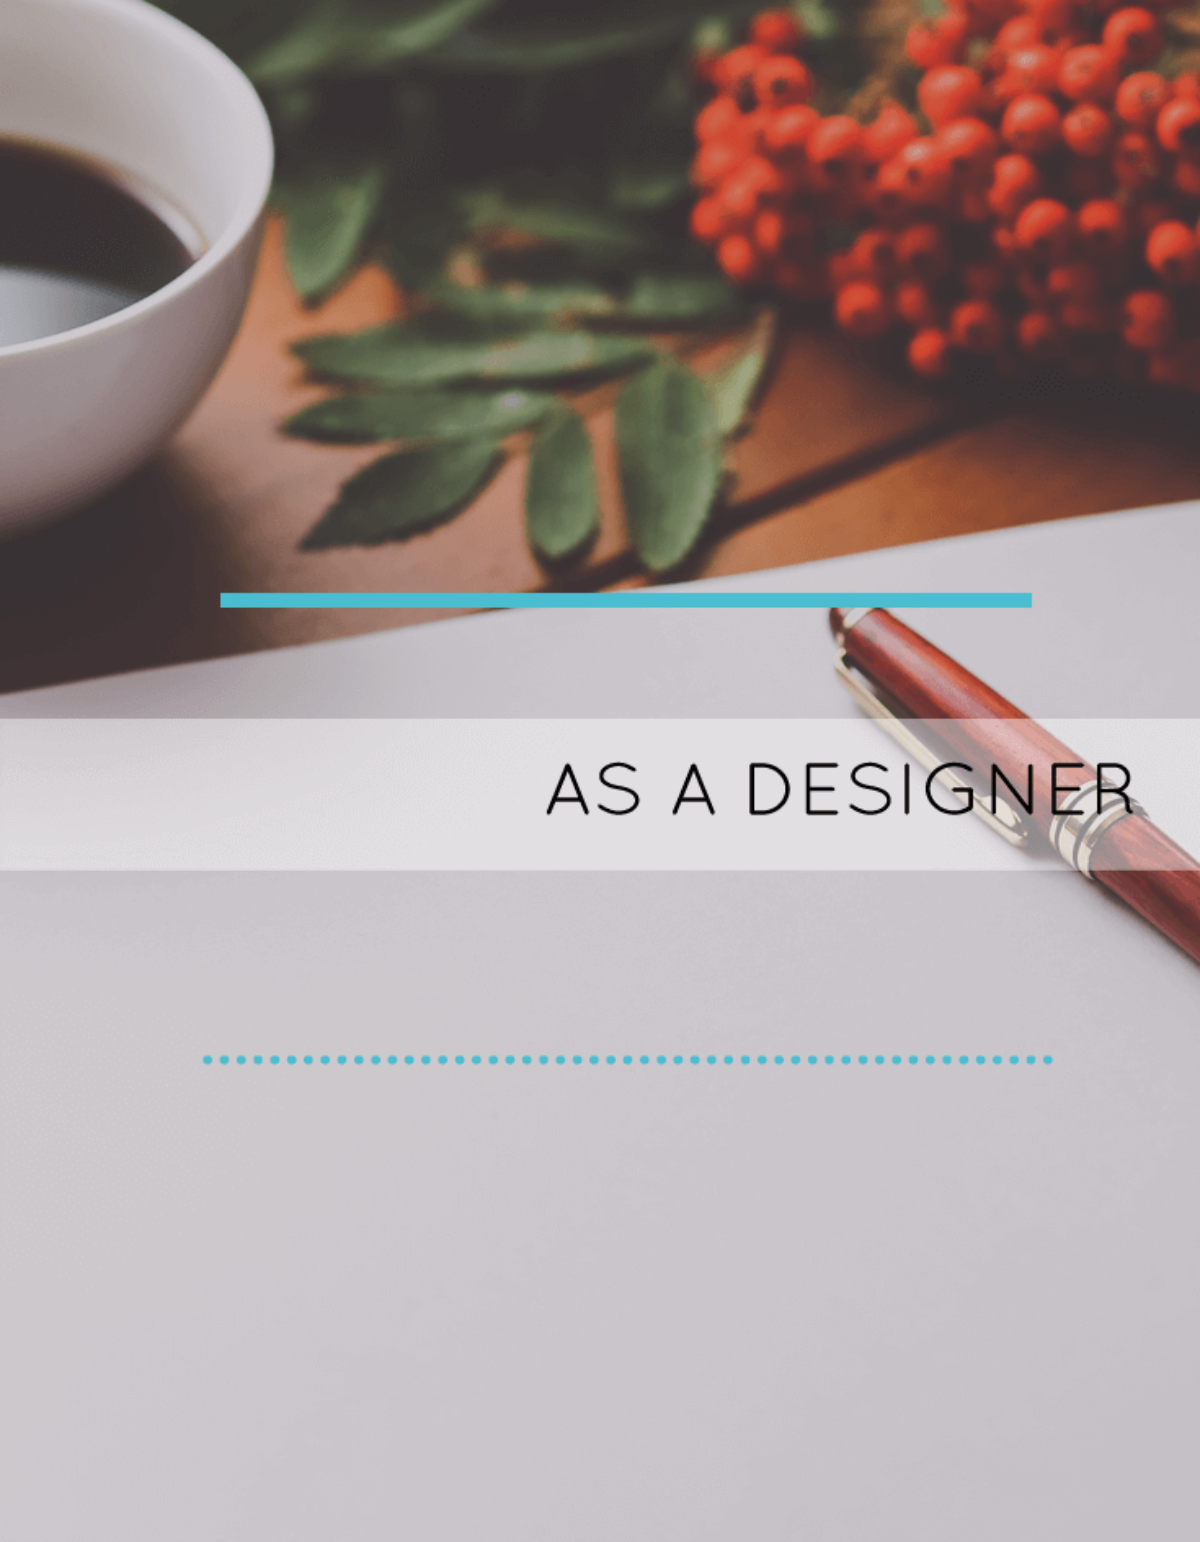 Living Life: as a Designer